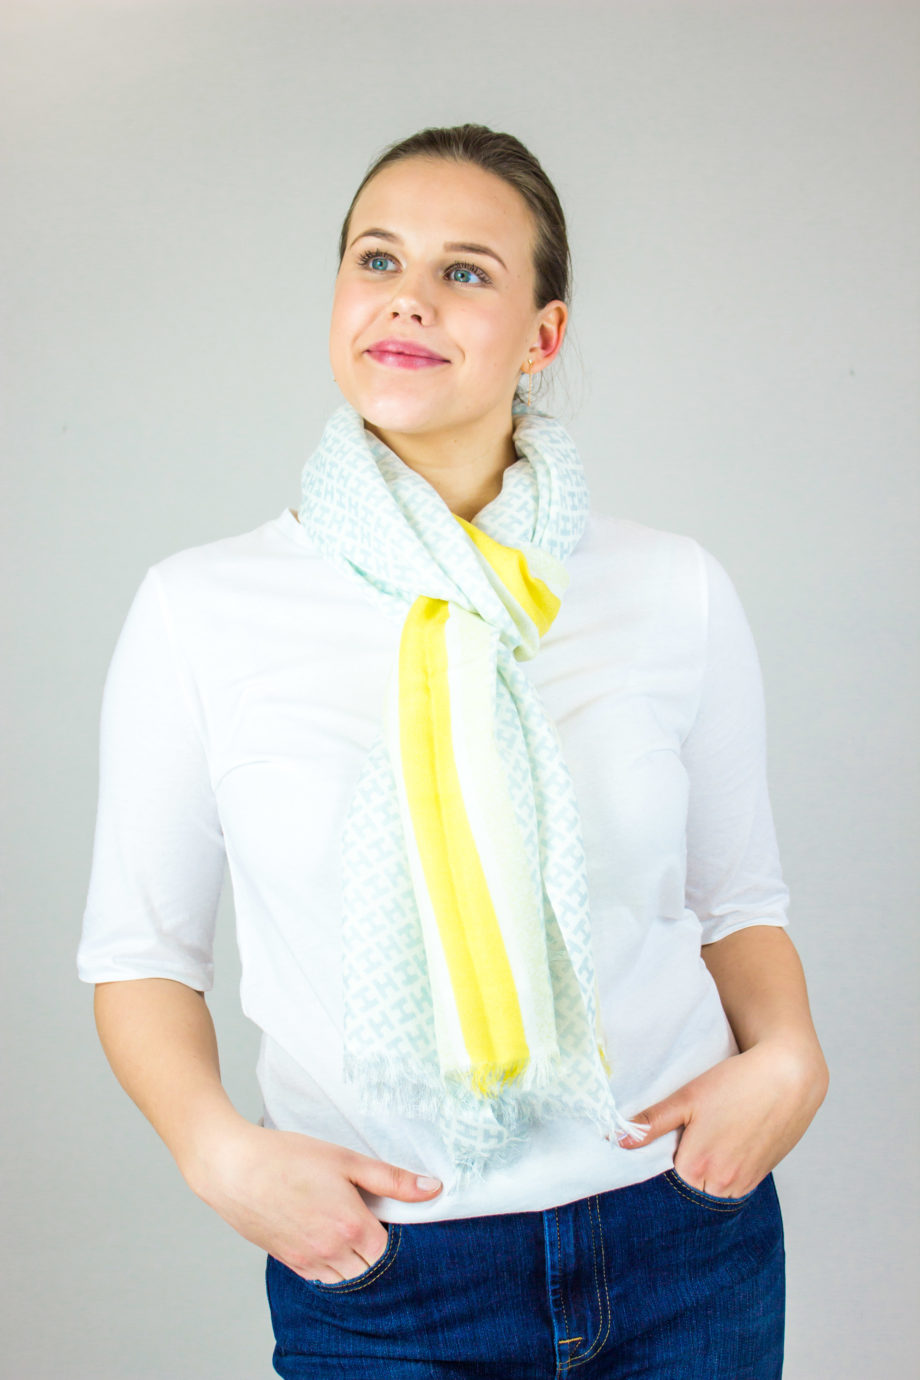 36. HEMISHPHERE H-scarf Green/yellow